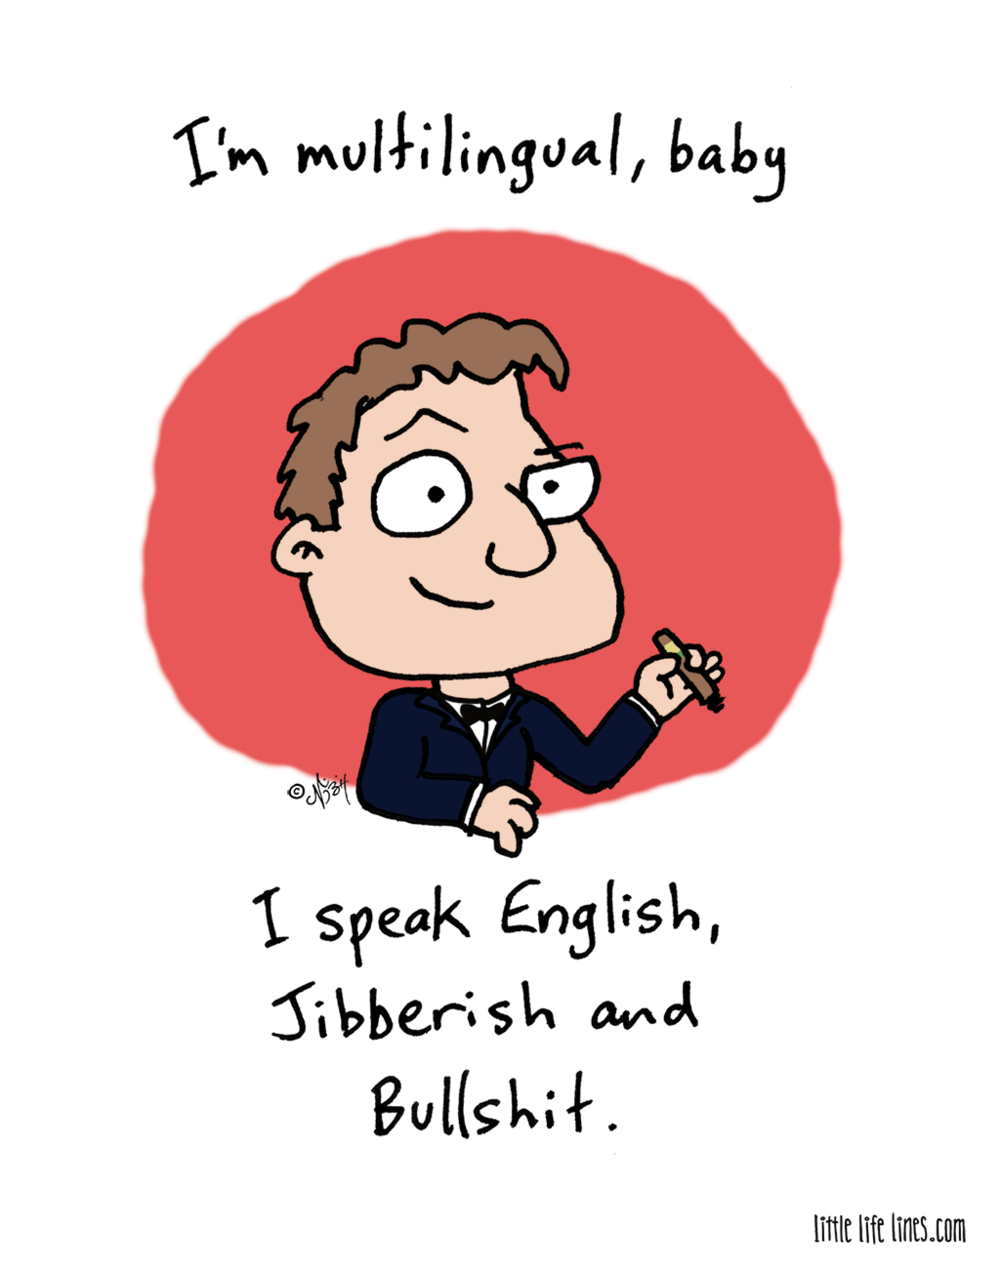 Multilingual cartoon man speaks several languages